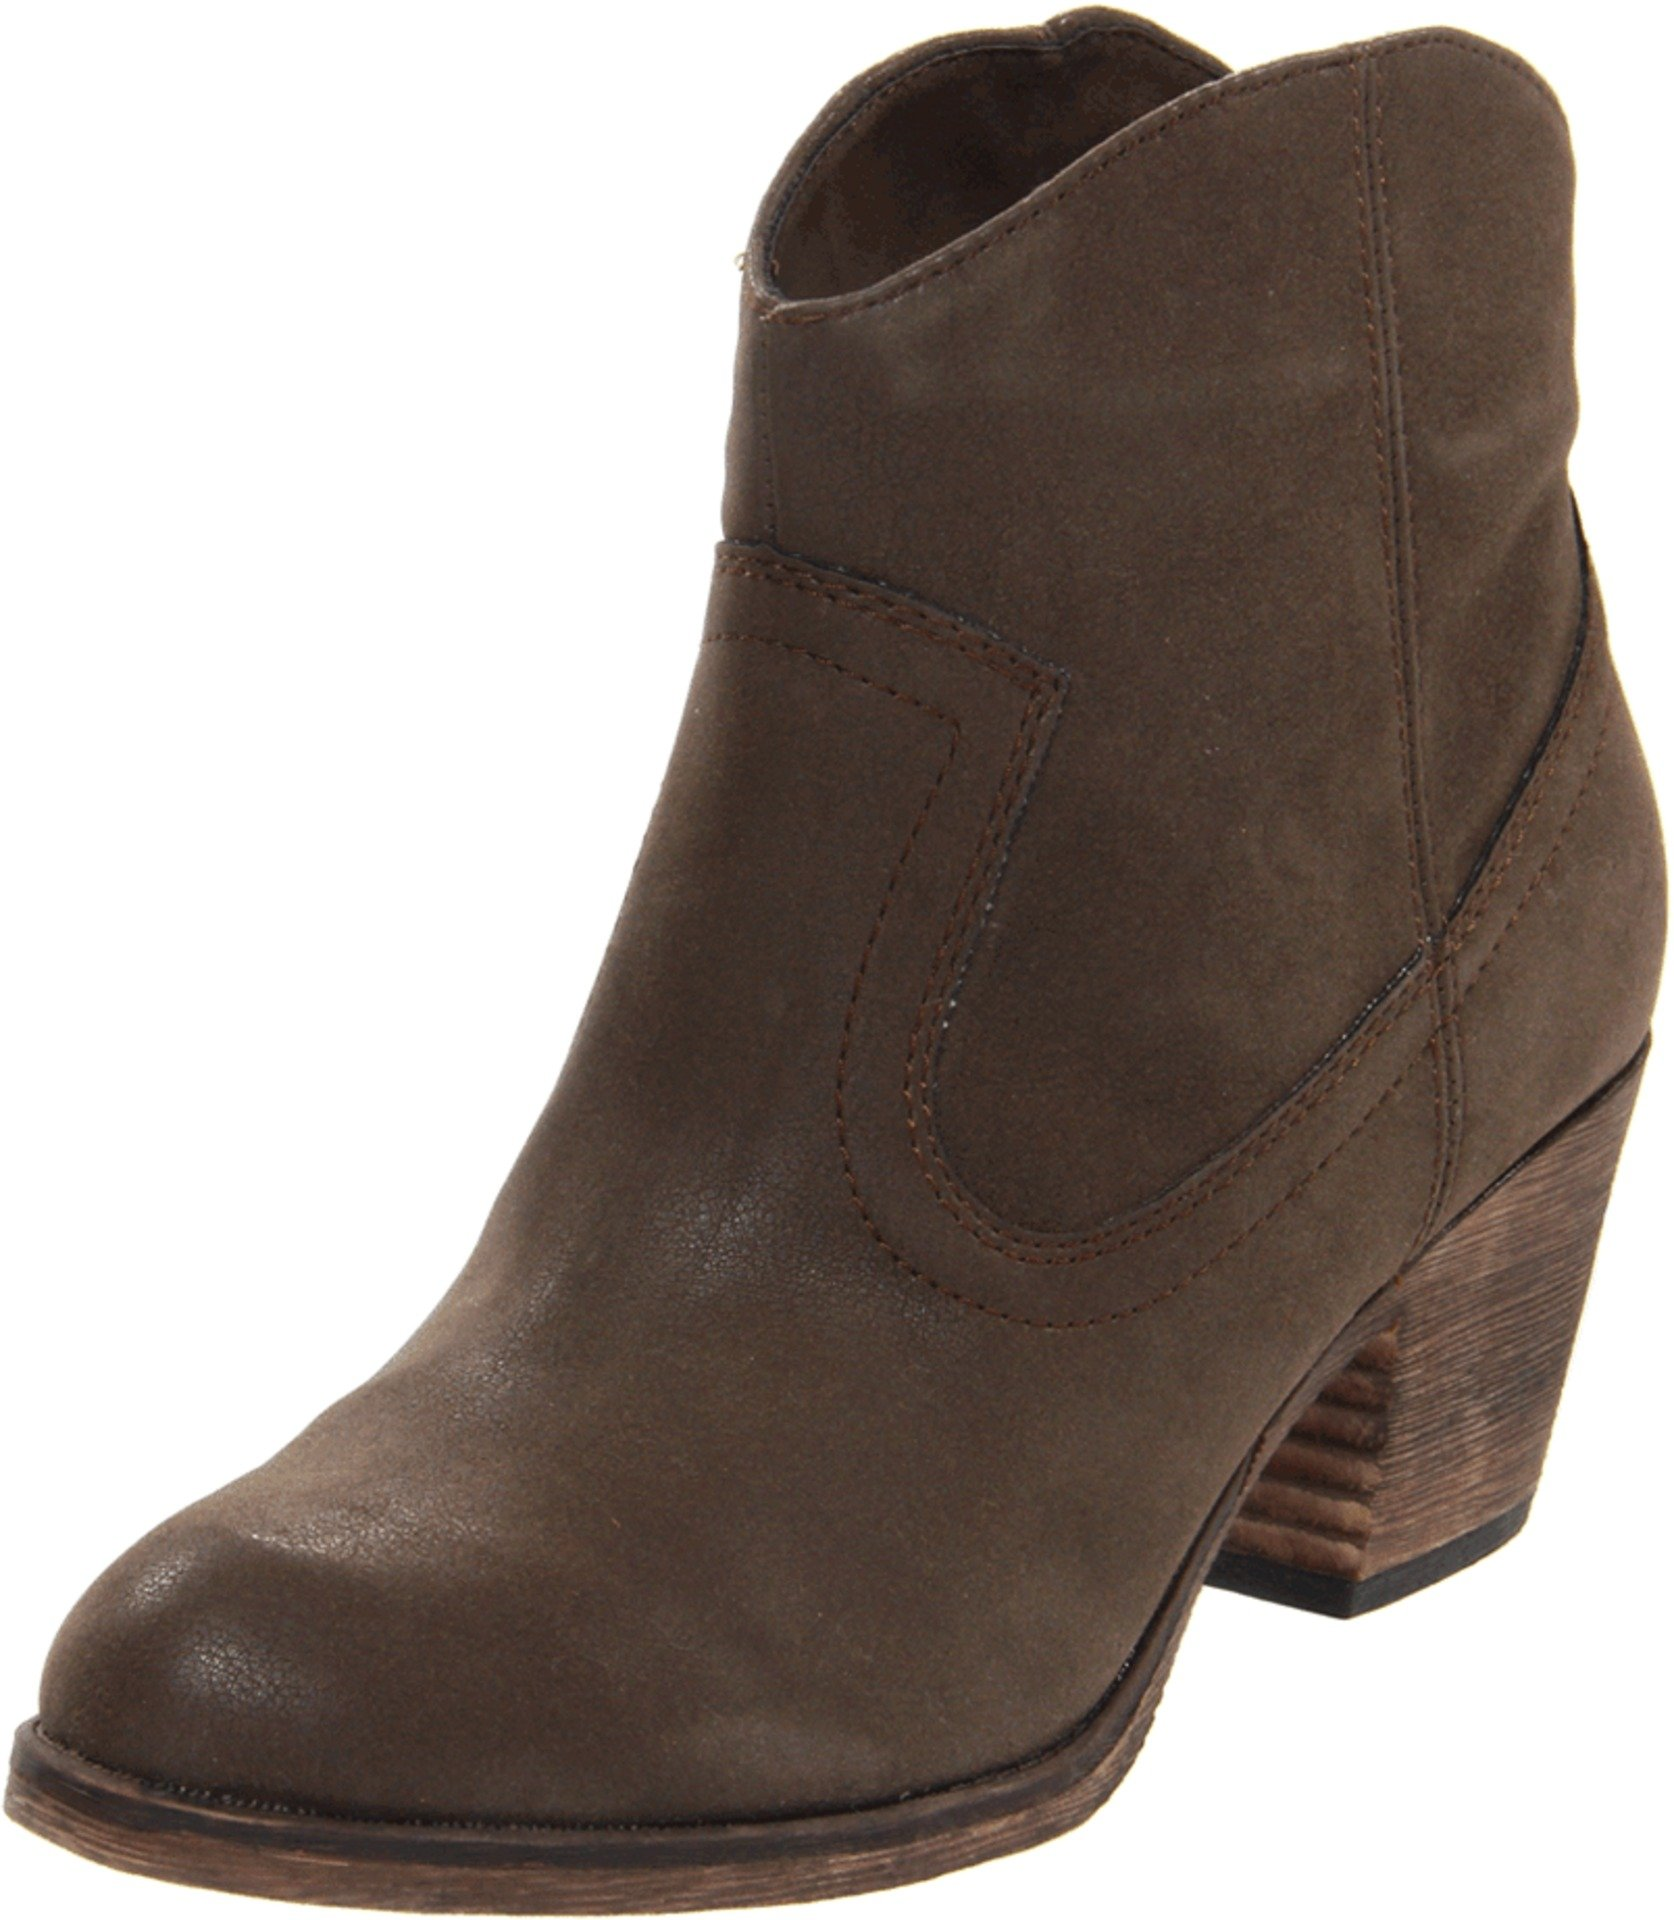 Rocket Dog women's Soundoff, Brown Vintage Worn, 11 M US